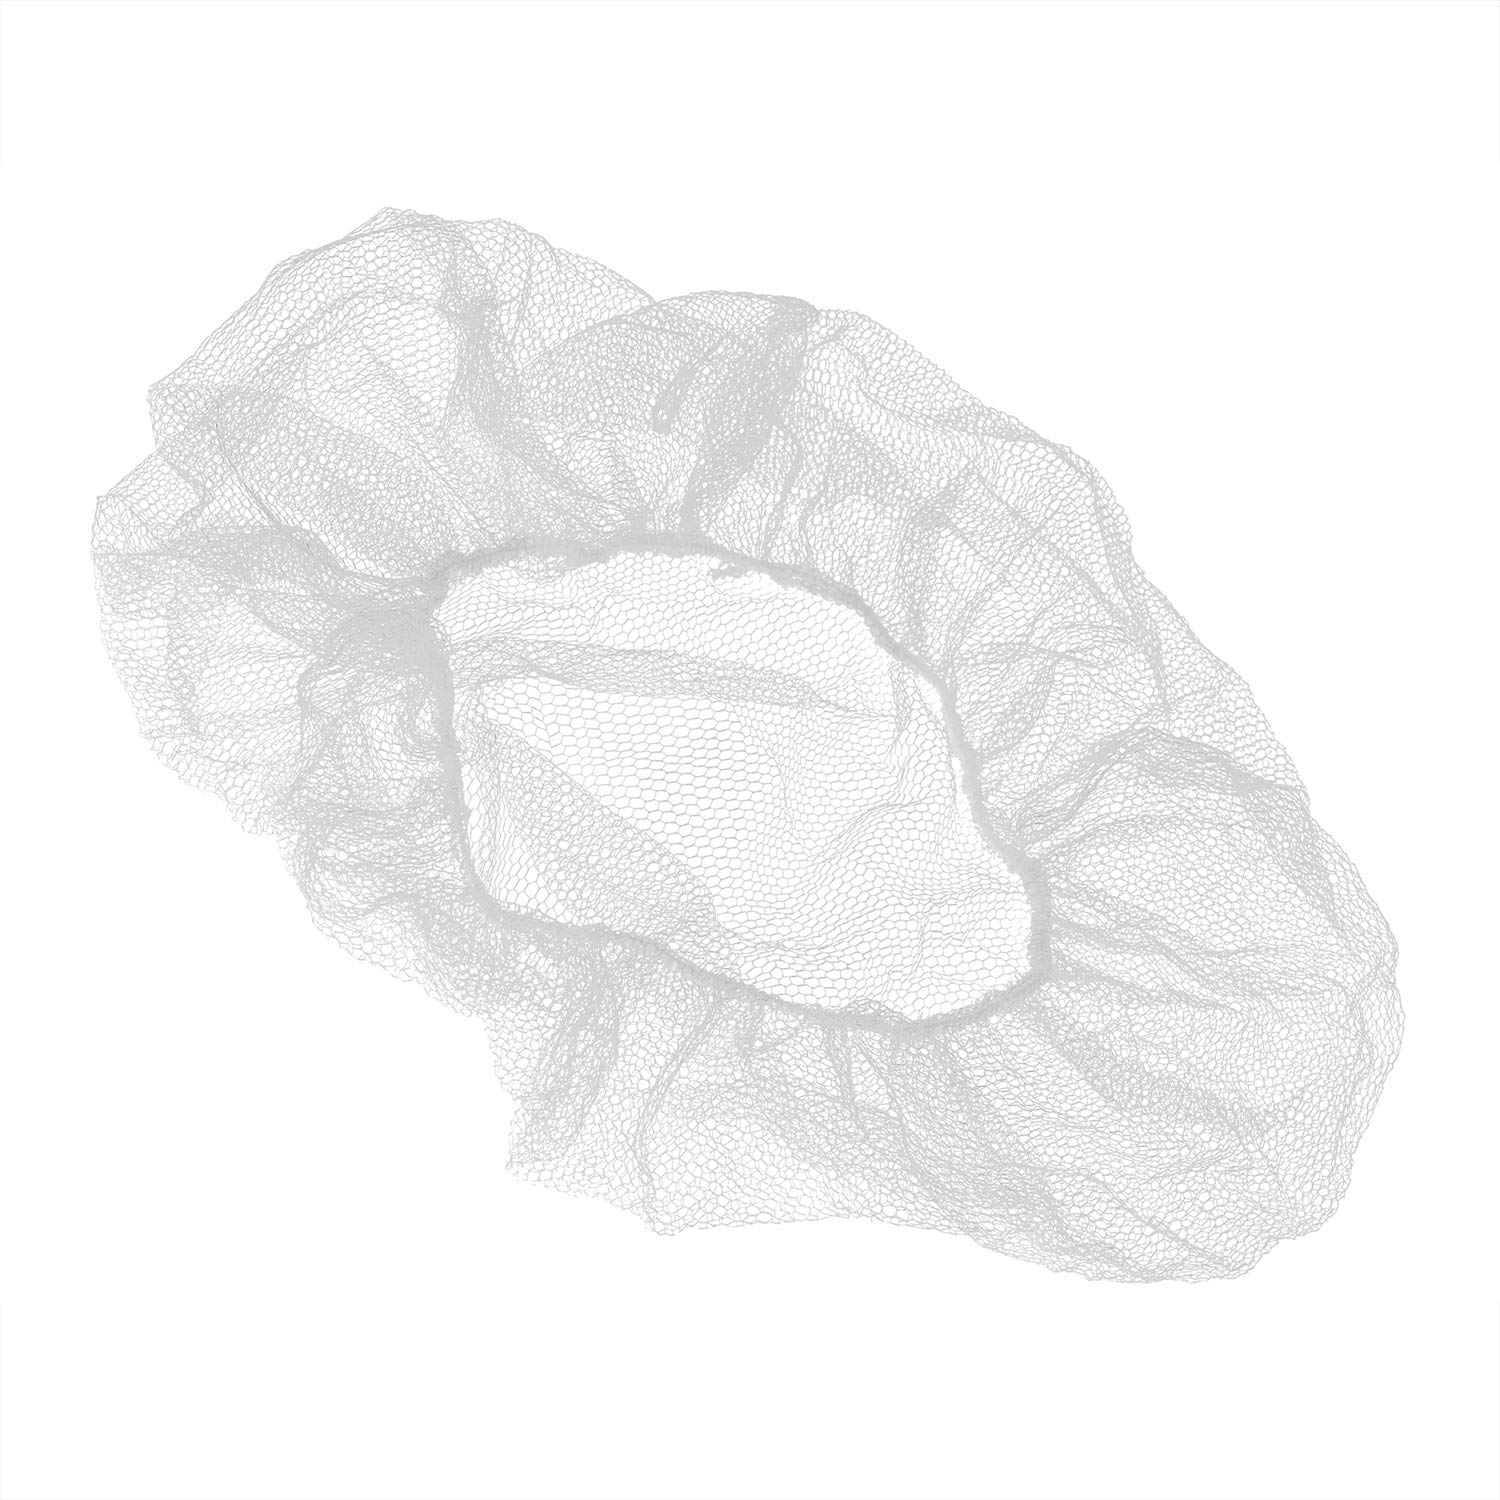 Royal 28 Inch White Latex Free Koronet, Package of 100